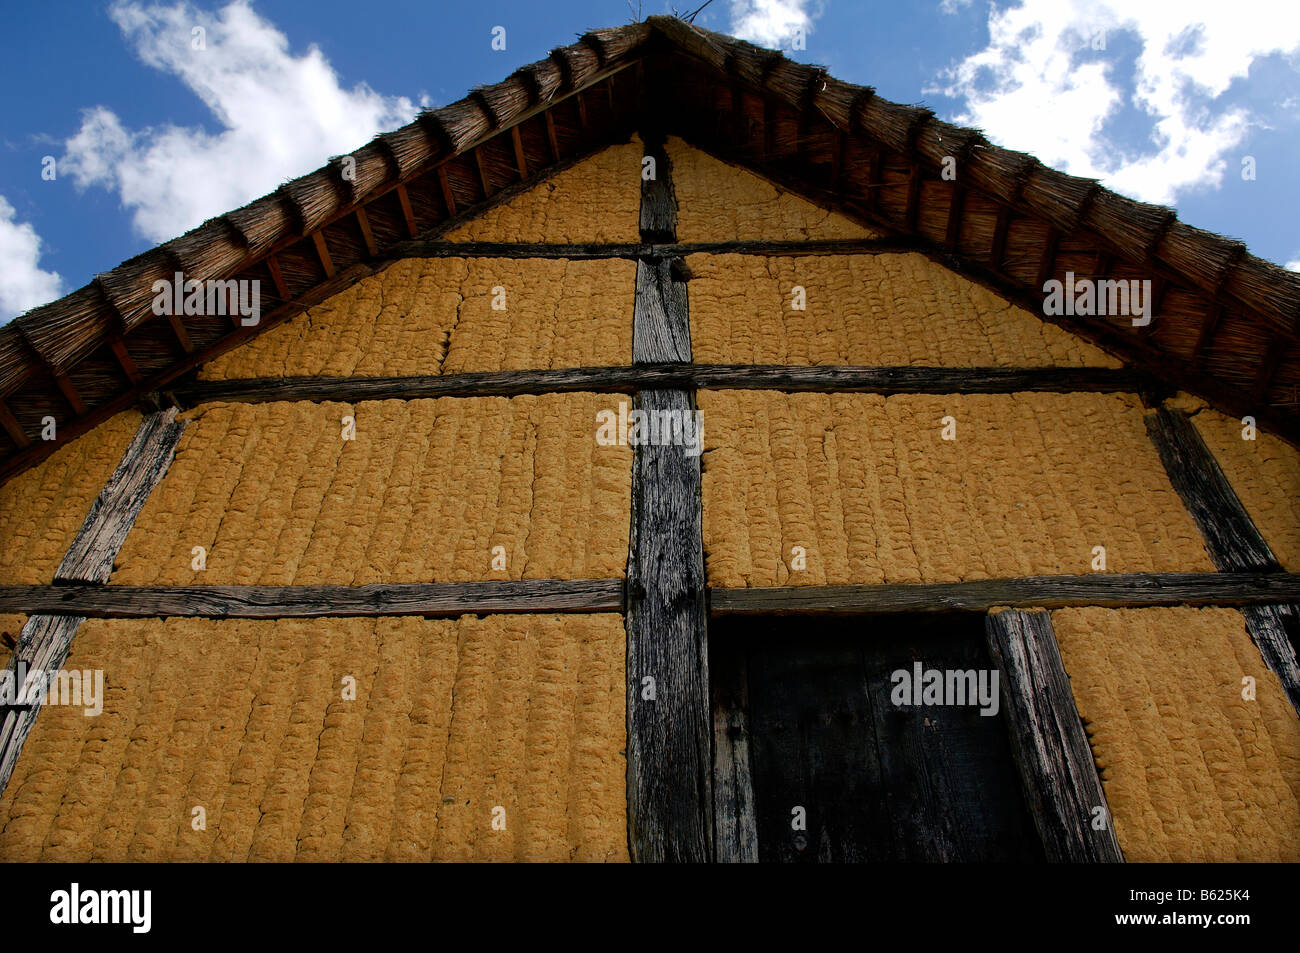 Ancient facade of a wattle and daub half-timbered house with thatched roof 1561, eco-museum, Ungersheim, Alsace, - Stock Image